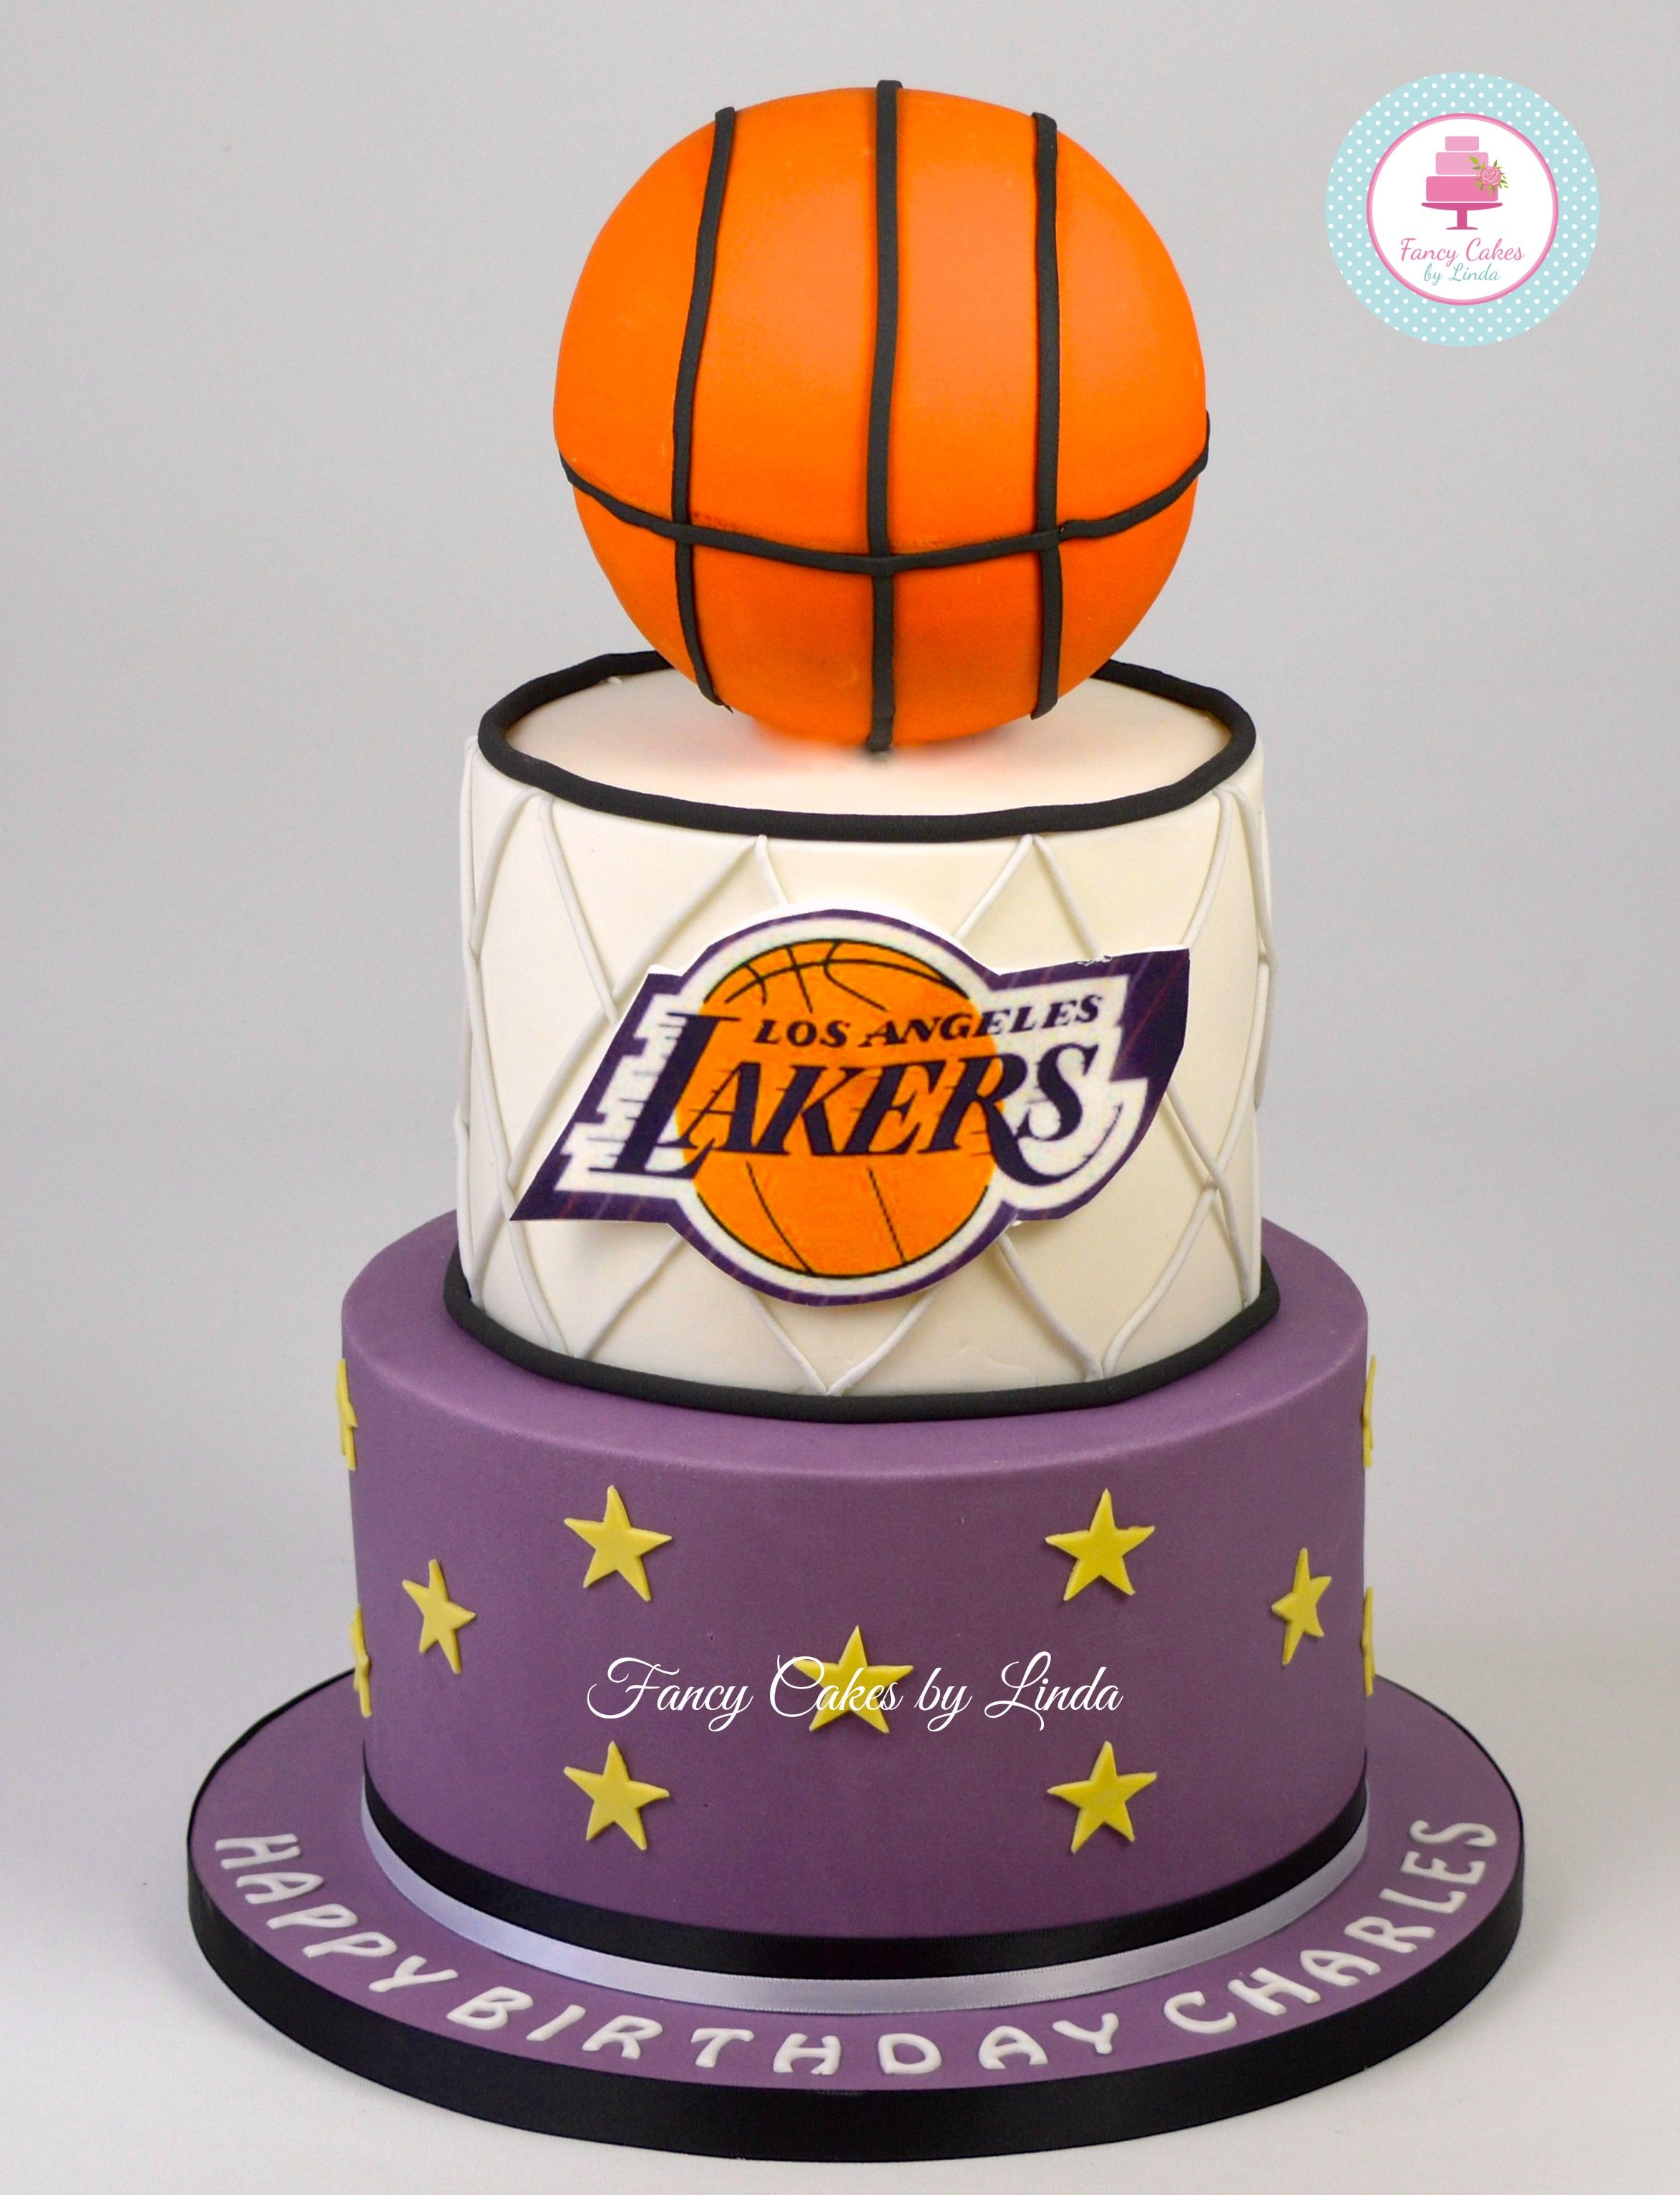 Basket Ball La Lakers Themed Birthday Cake 07917815712 Www